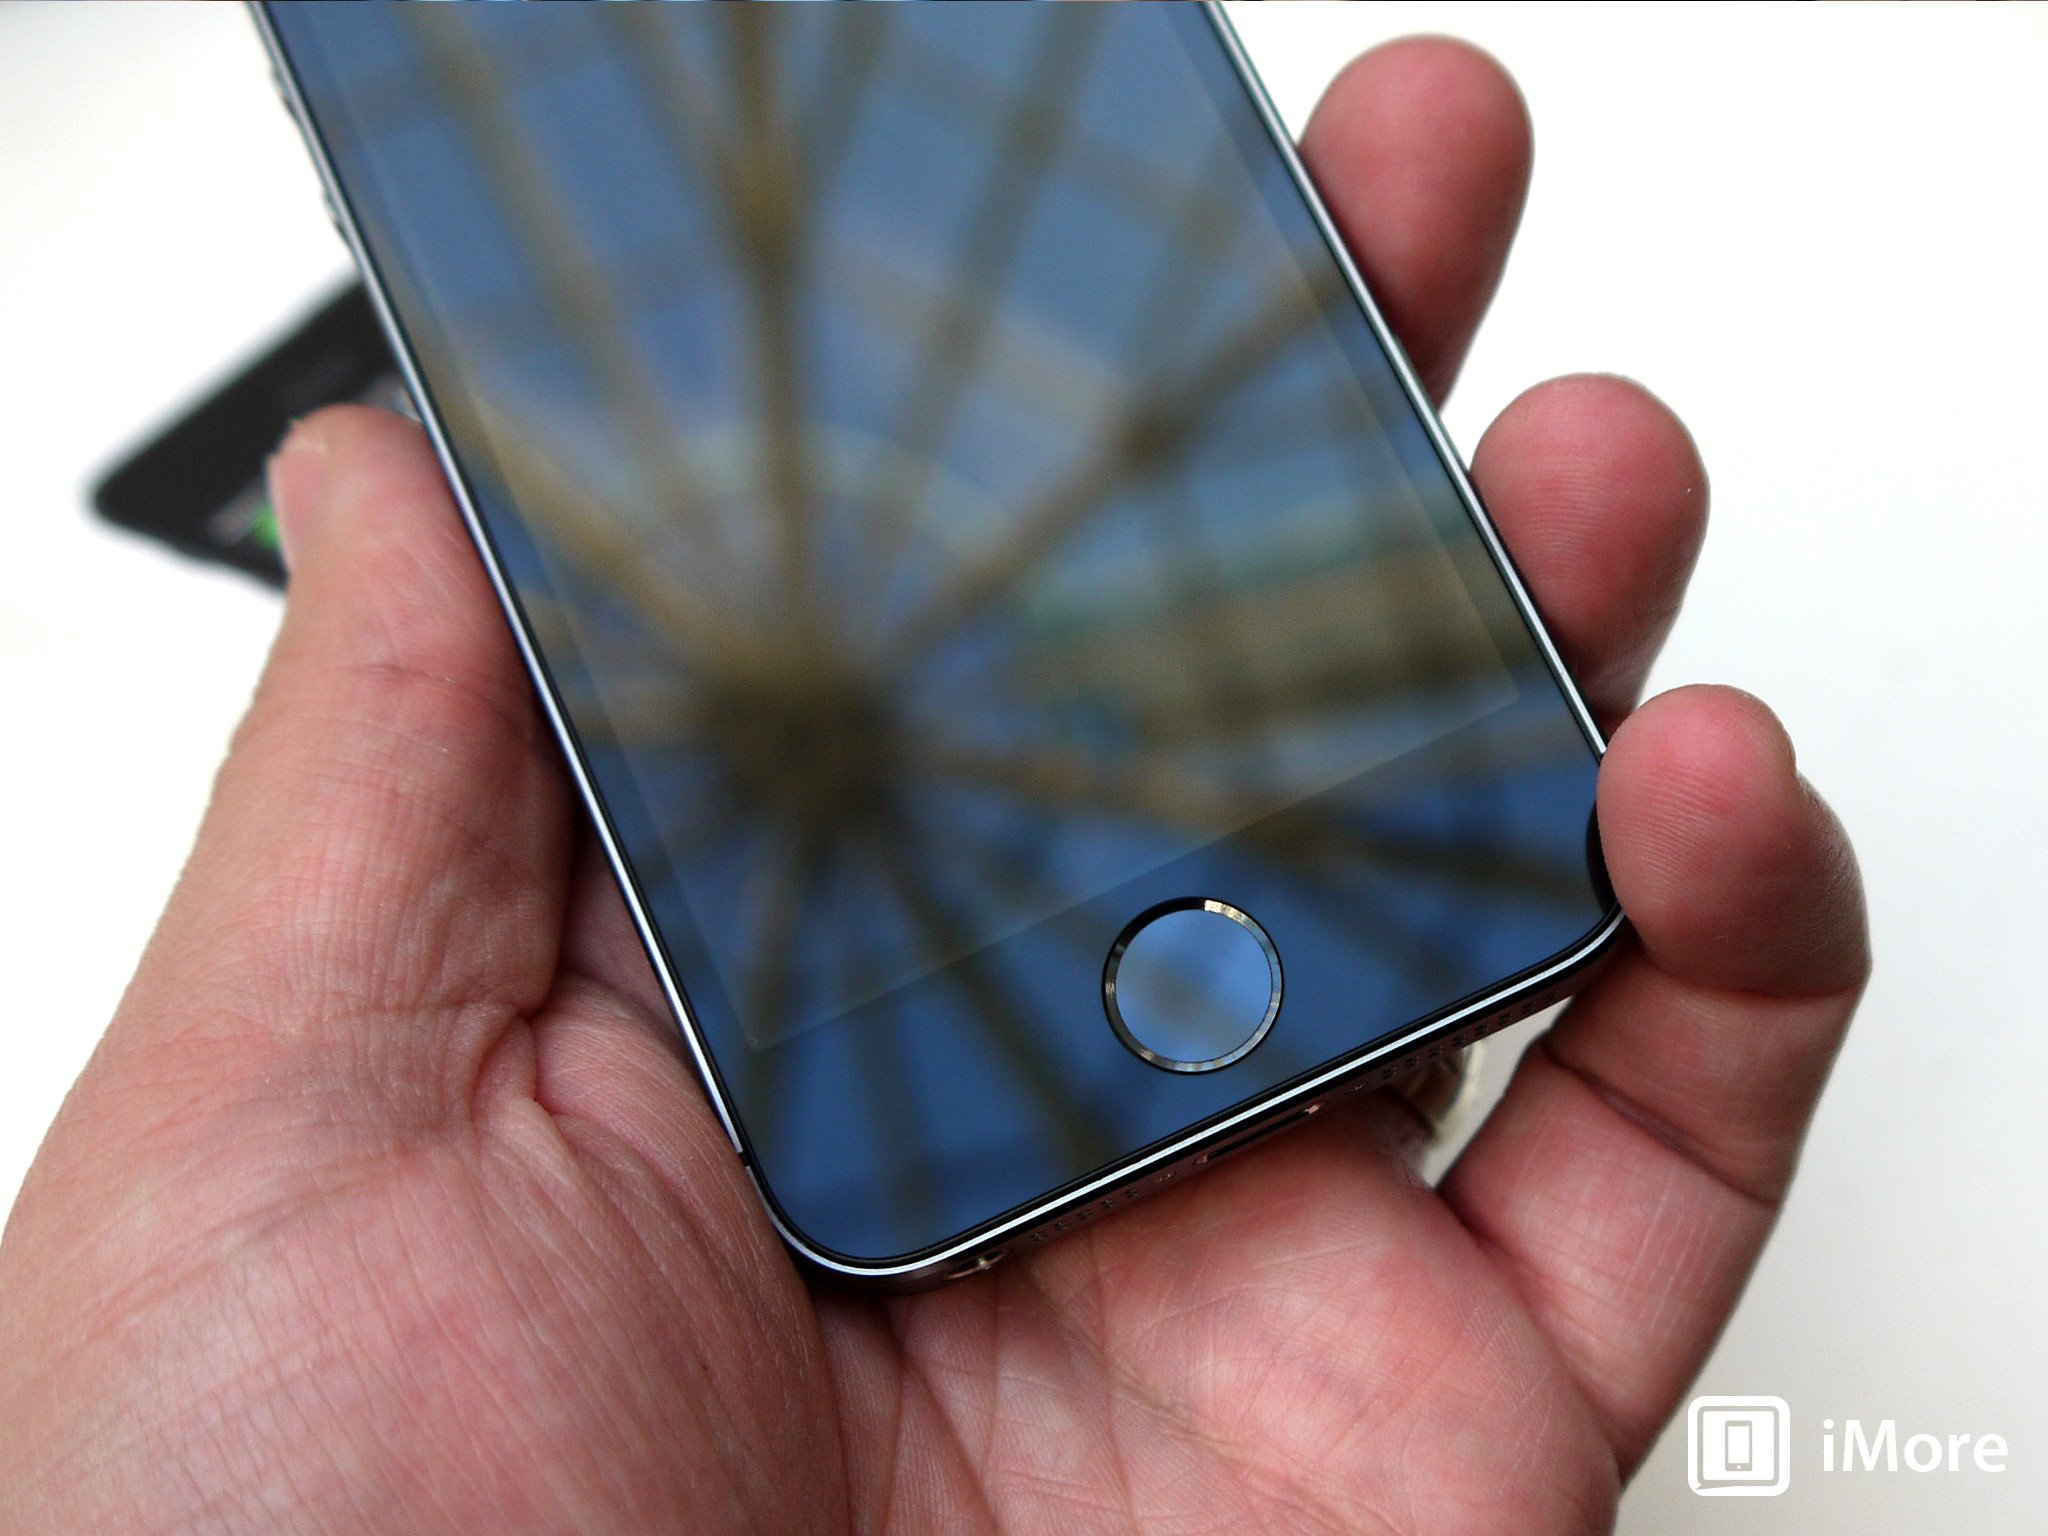 Iphone 4s Ios 7 Wallpaper Space Gray Iphone 5s Gallery Imore